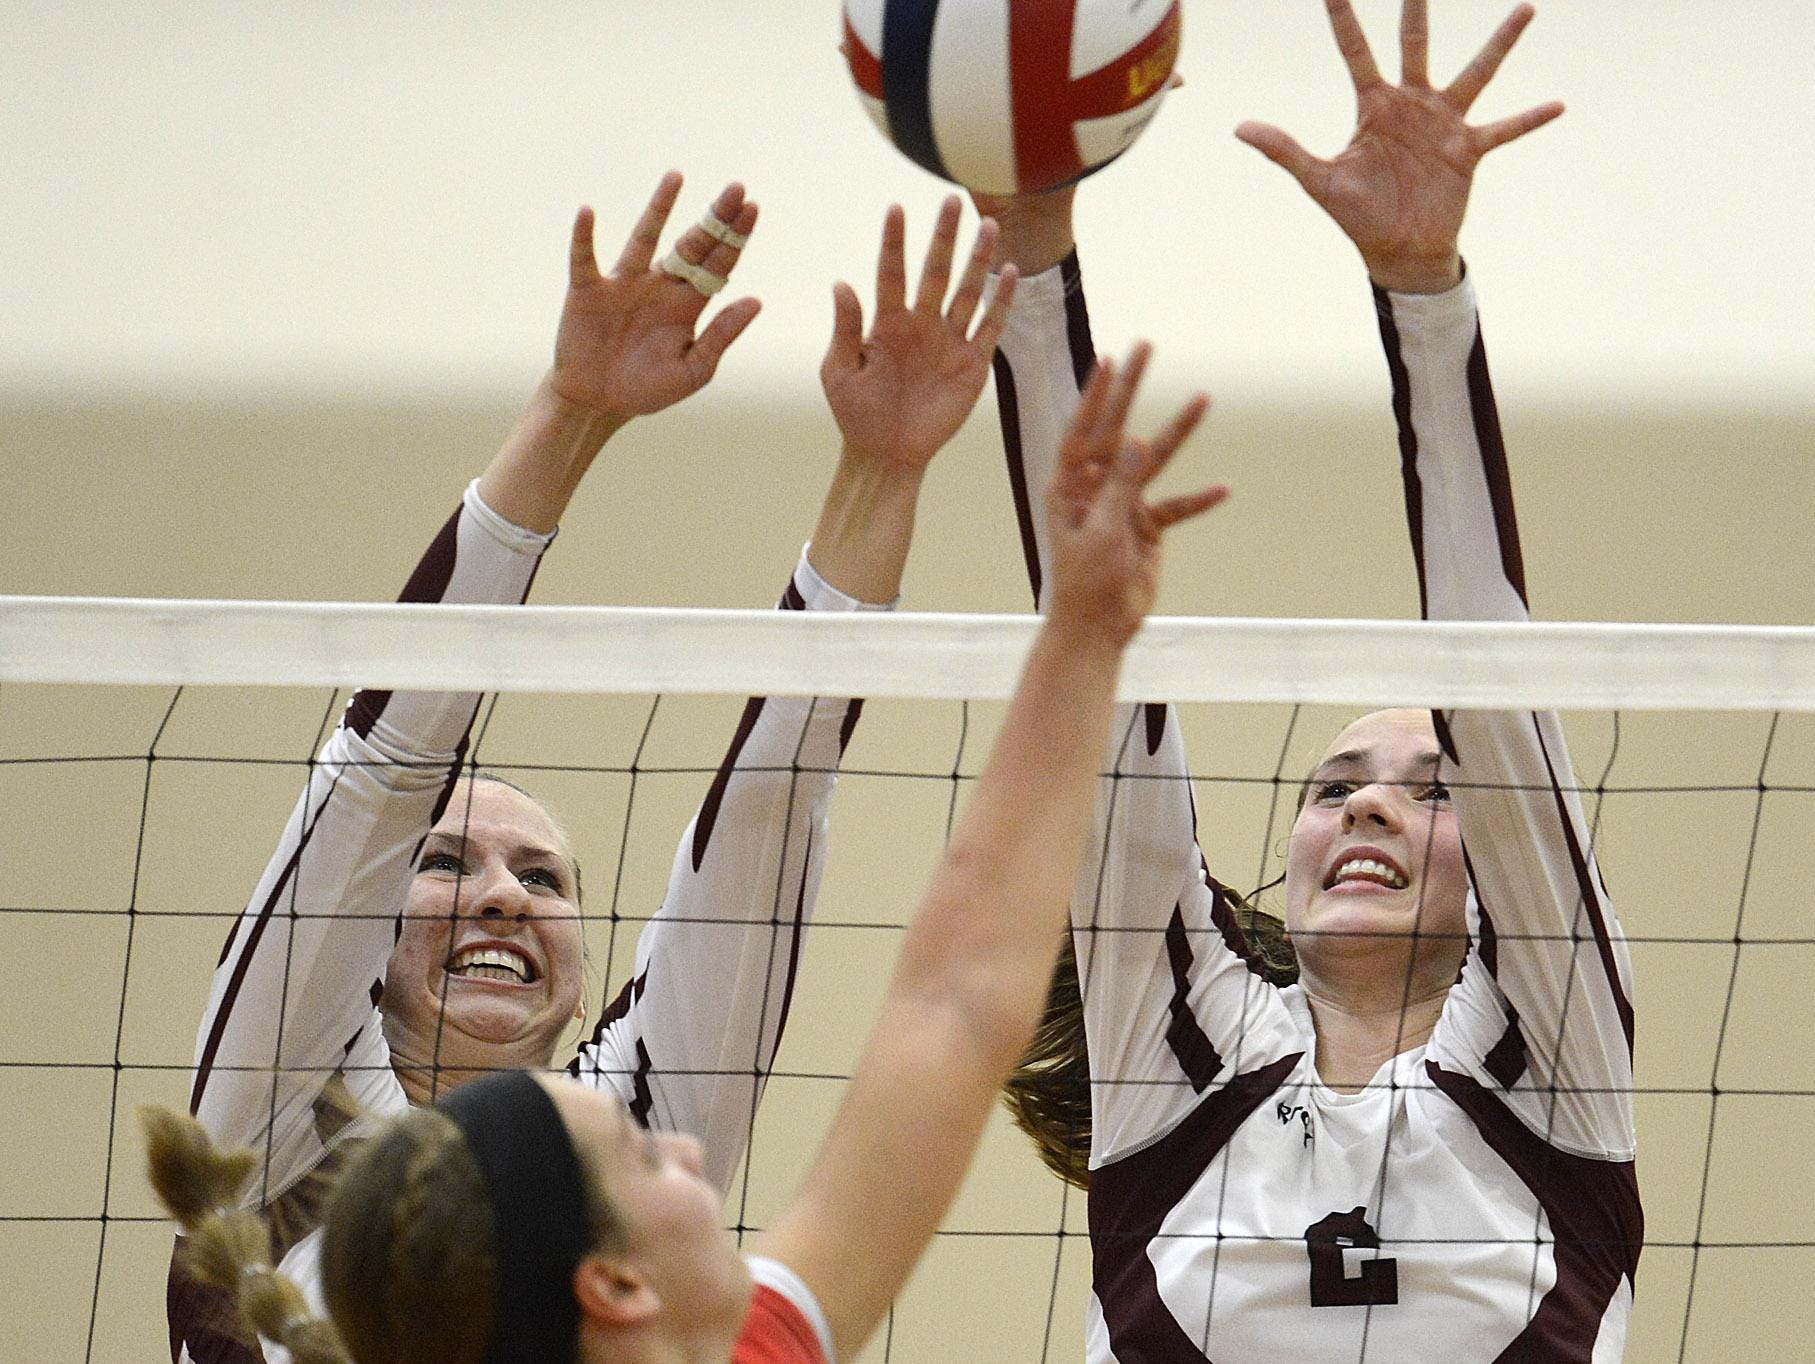 De Pere's Lindsey Mirkes (2) and Ashley Smits (4) team up to block a shot attempt by Manitowoc's Cassidy Mrotek (9) during Thursday night' volleyball match at De Pere.